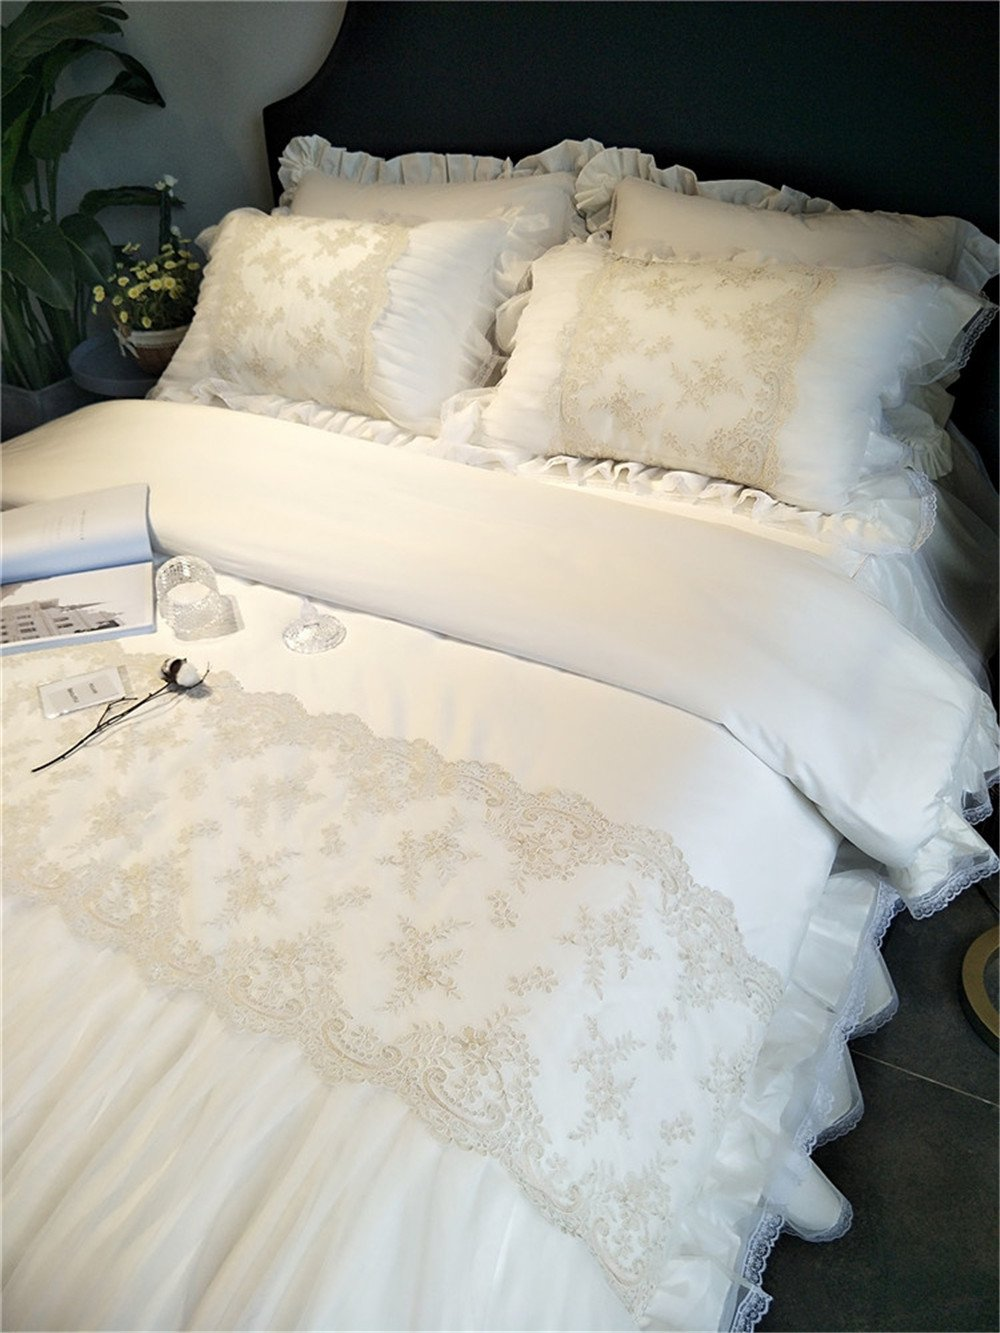 Lotus Karen White Ruffles Korean Bedding Set With Embroidery Lace Flower Patterns Romantic Wedding Bedding Set 60S Egyptian 100%Cotton Duvet Cover Set,1Duvet Cover,1Bedskirt,2Pillowcases by Lotus Karen